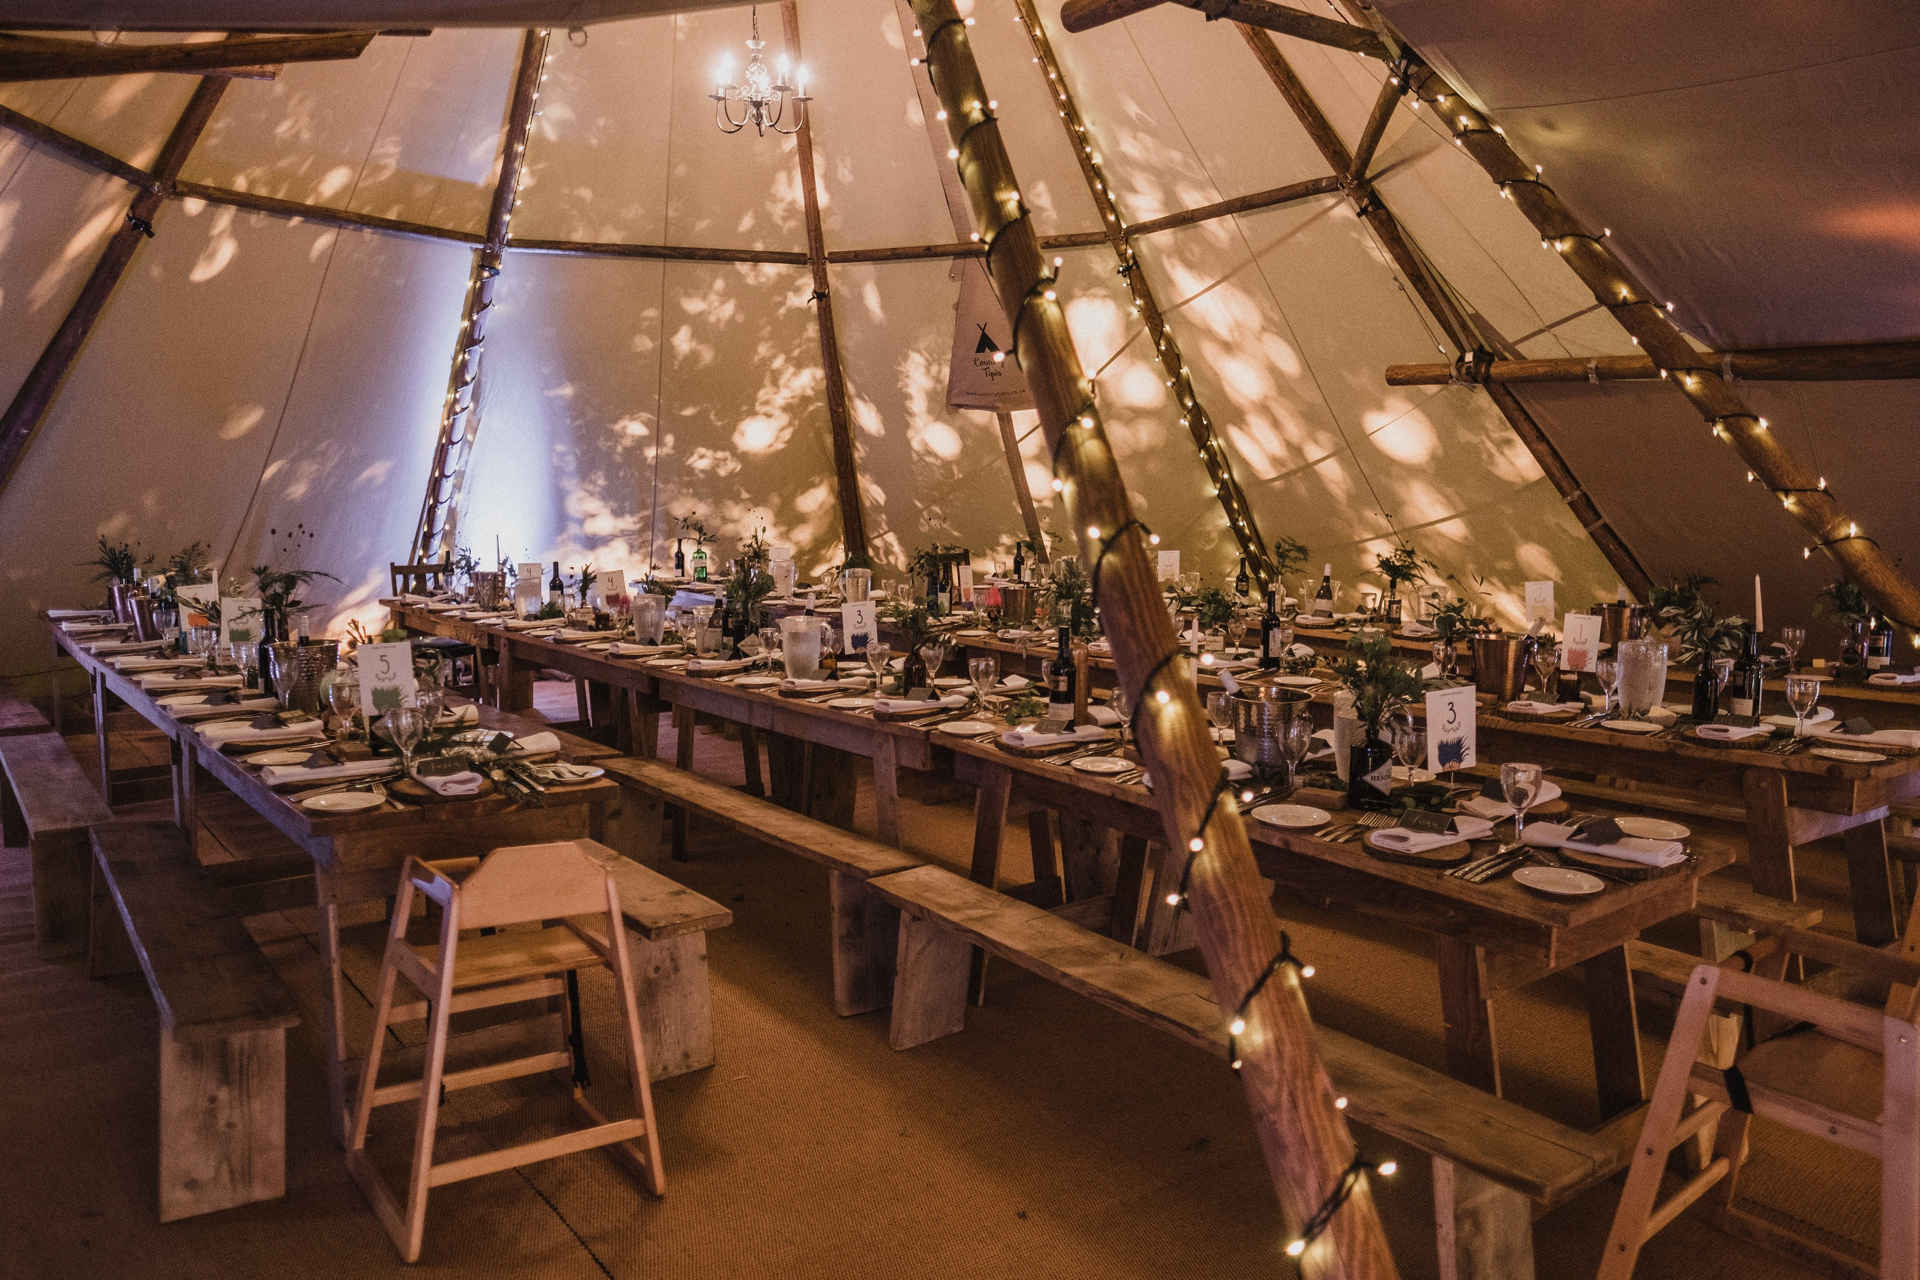 Tipi wedding at Lila's Wood, Tring, Hertfordshire